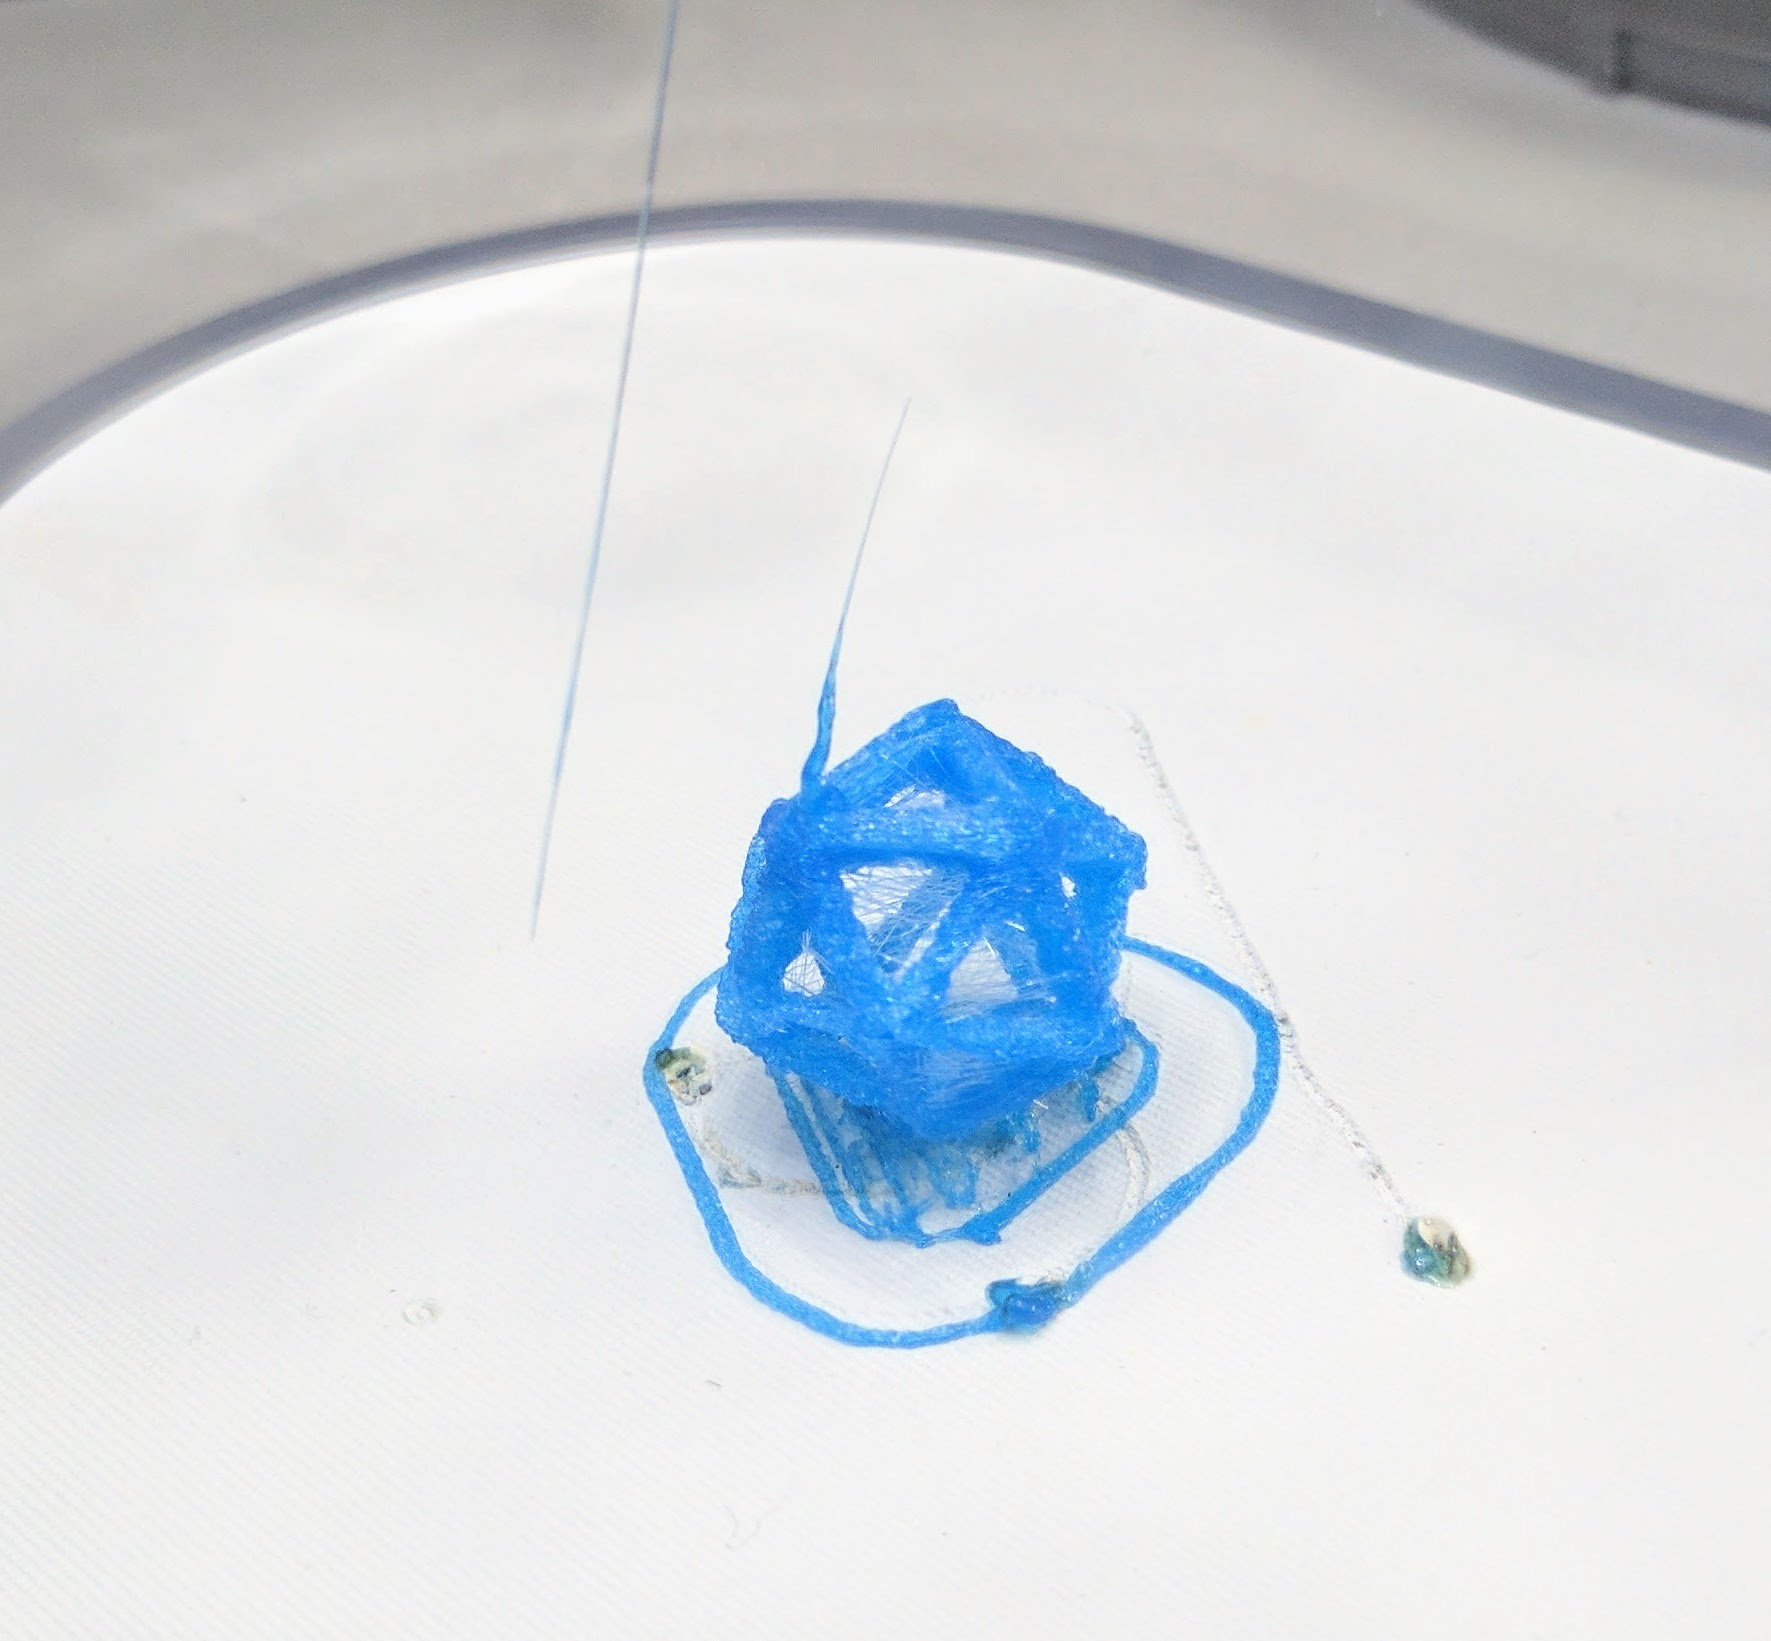 tiko-first-print-of-included-model